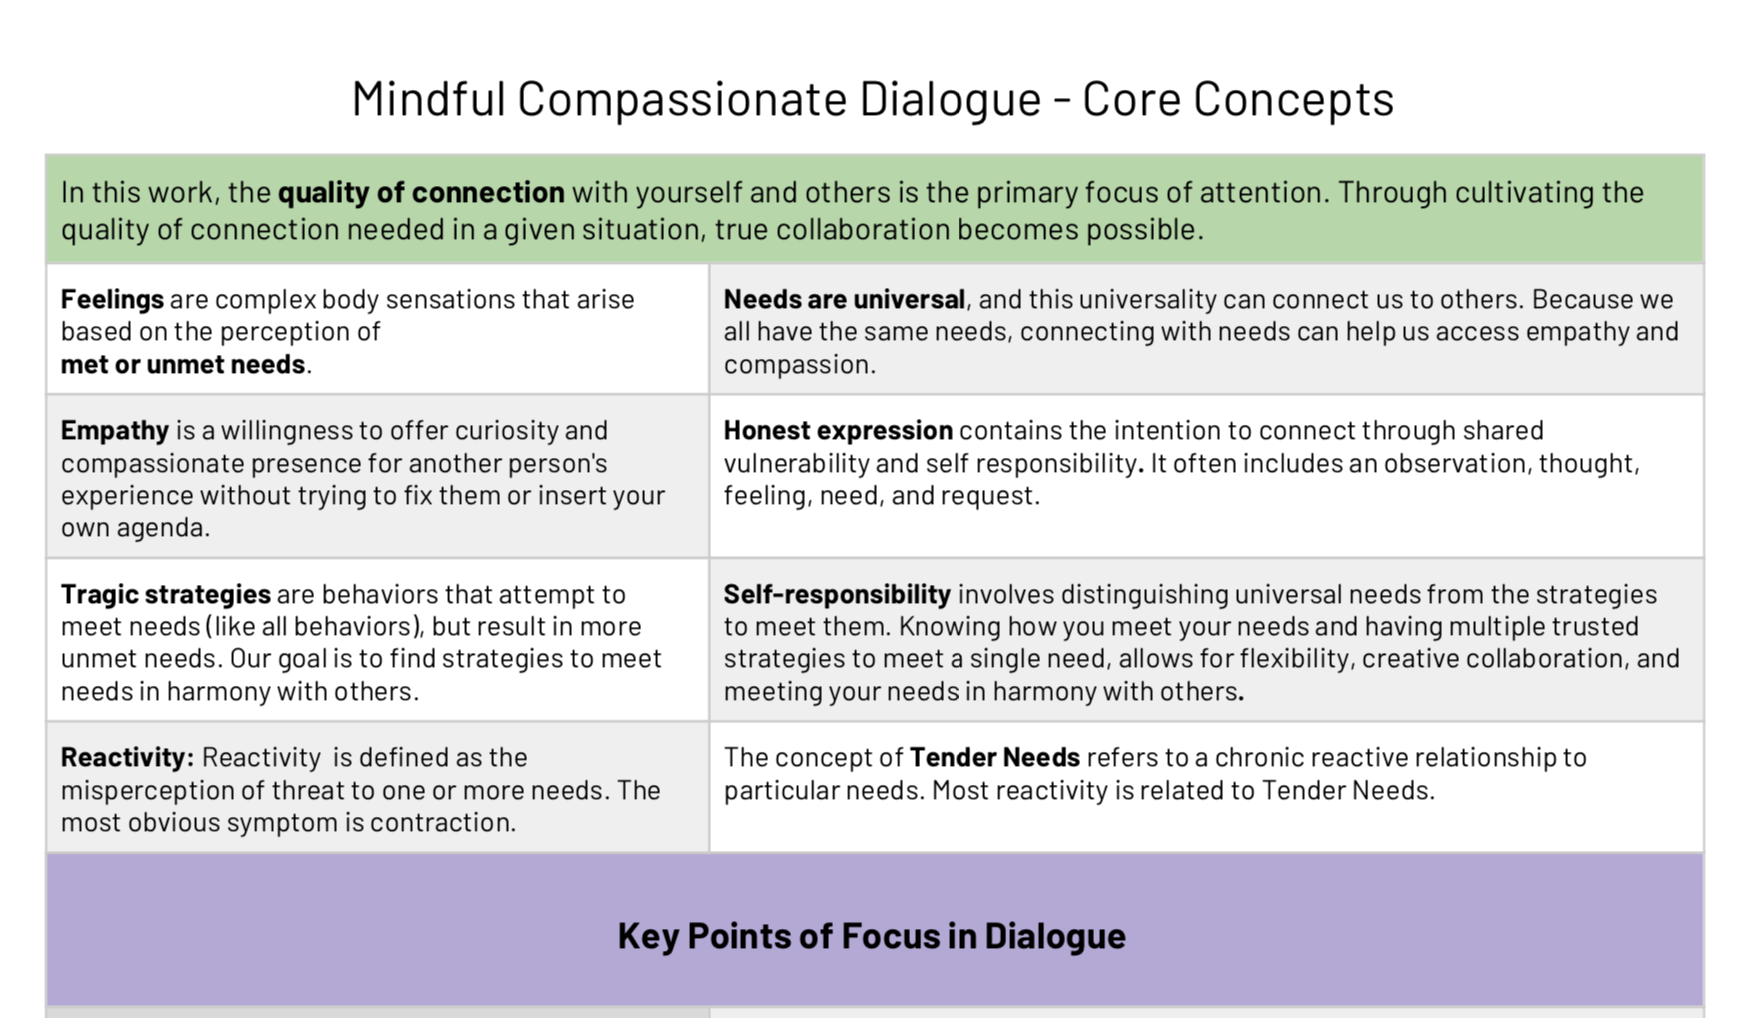 - Mindful Compassionate Dialogue - Core Concepts